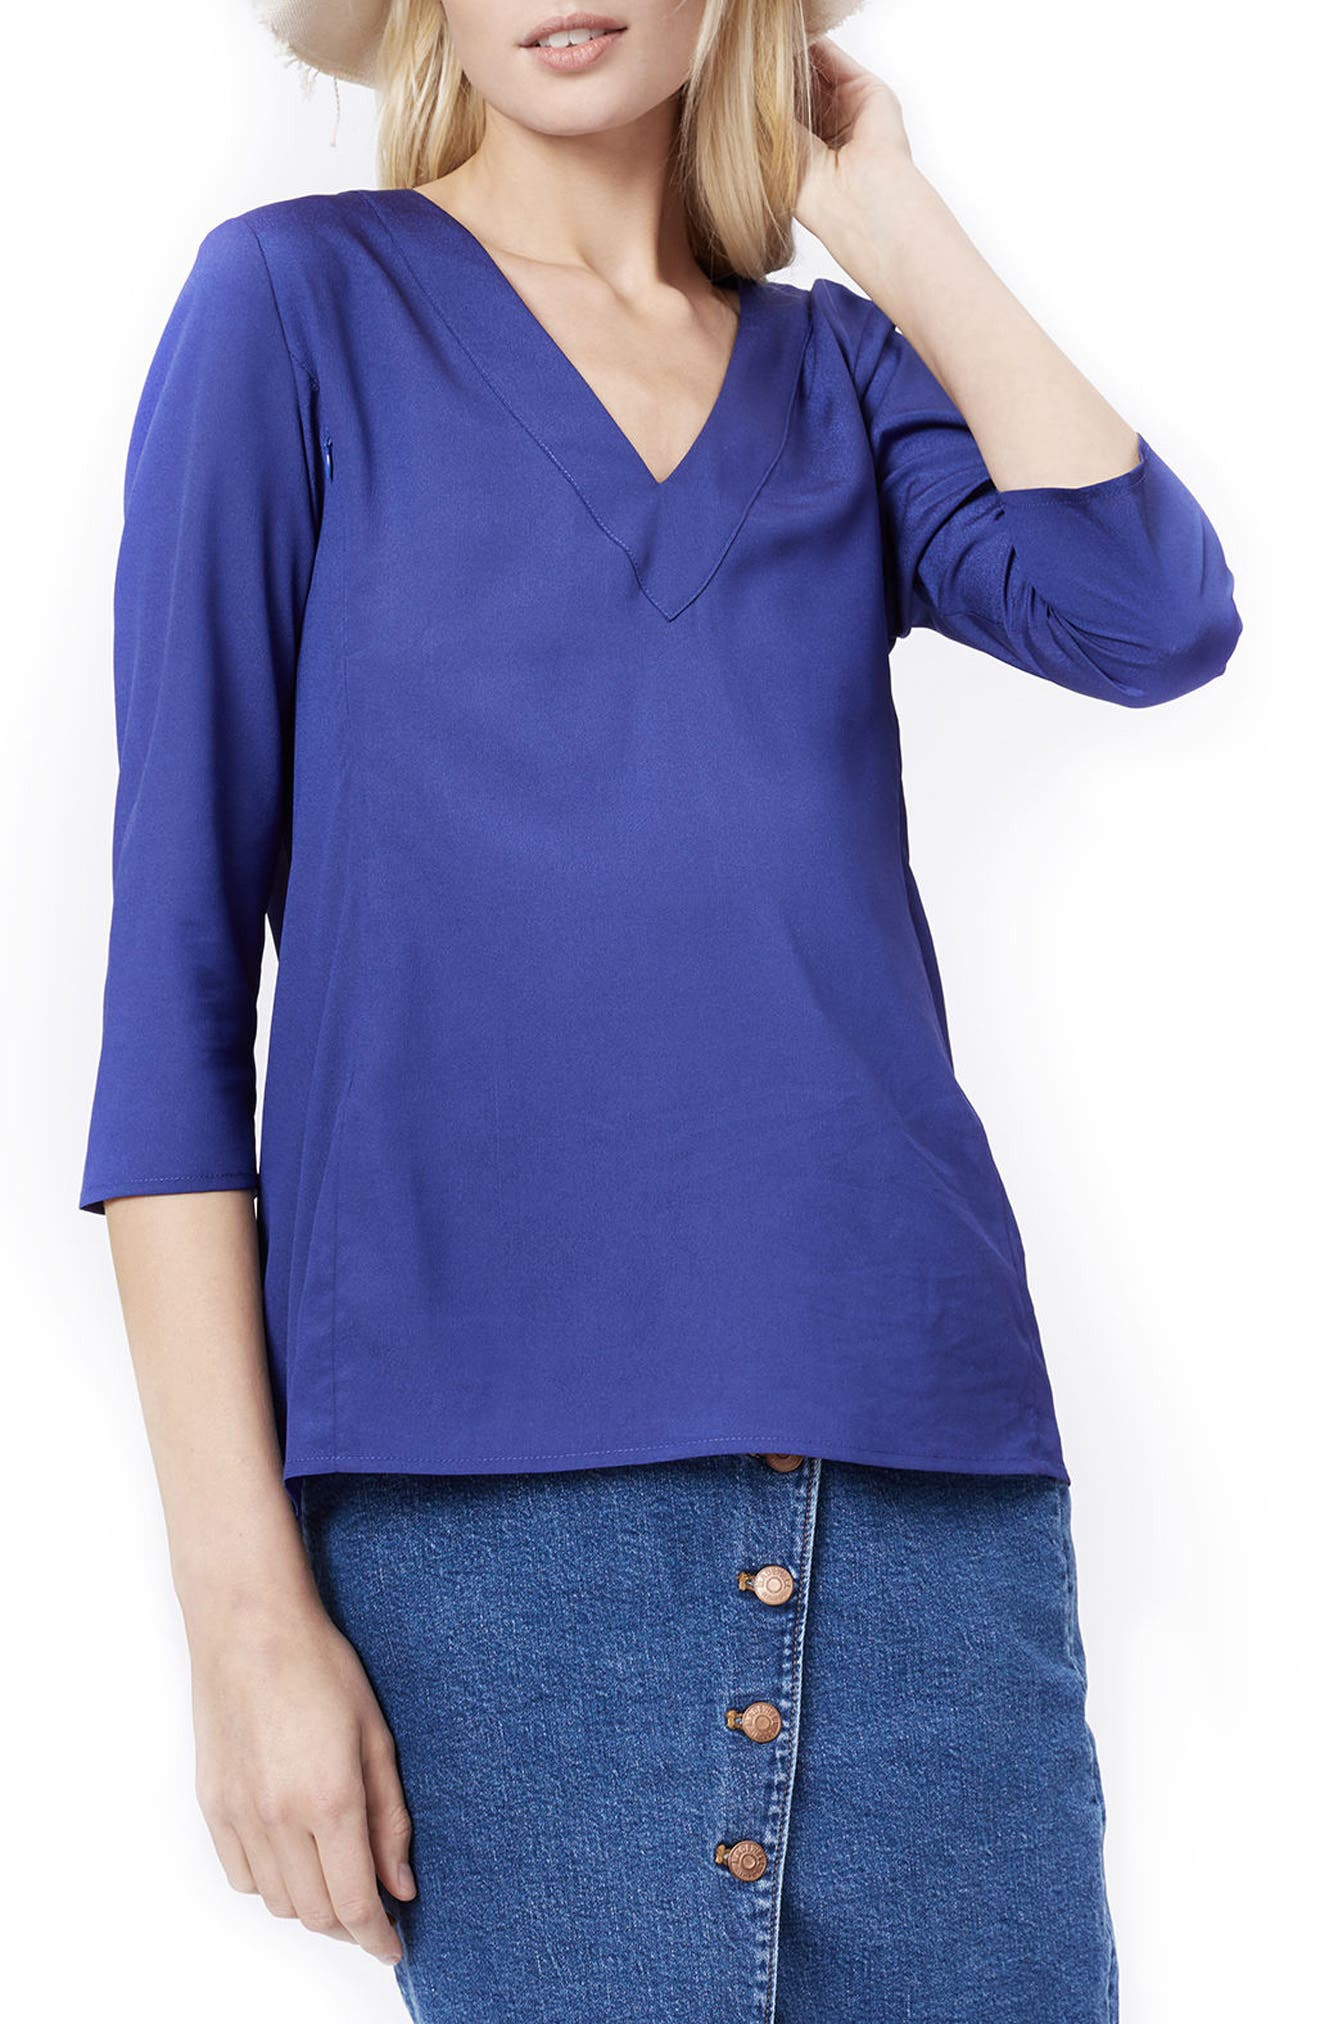 Alice Maternity Blouse,                         Main,                         color, Blue